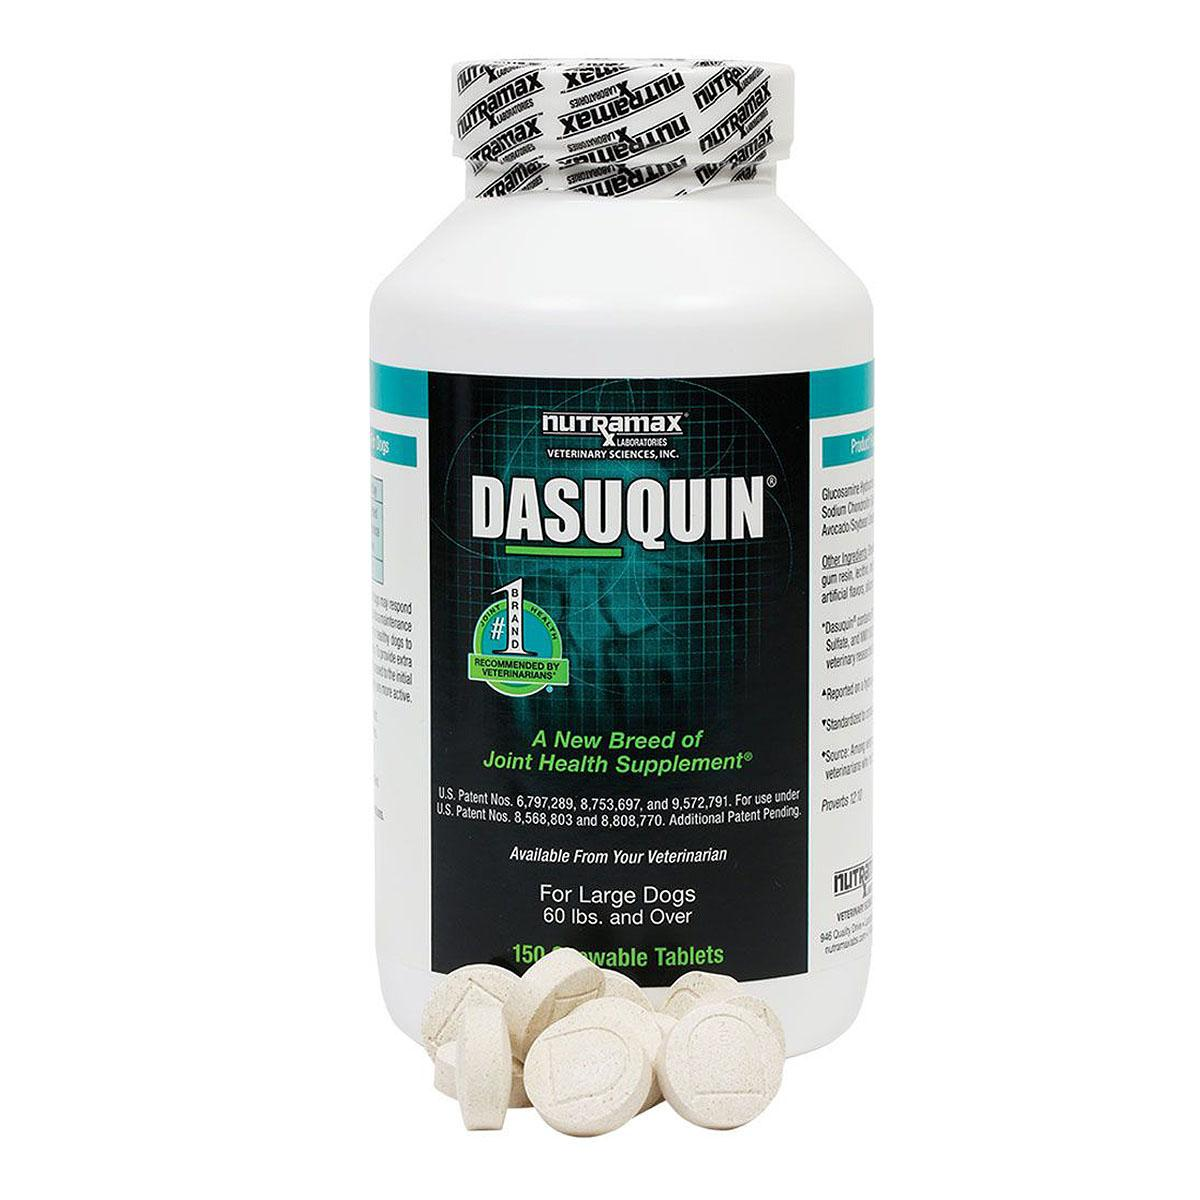 Dasuquin®️ Joint Health Supplement for Large Dogs by Nutramax®️ - Chewable Tablets